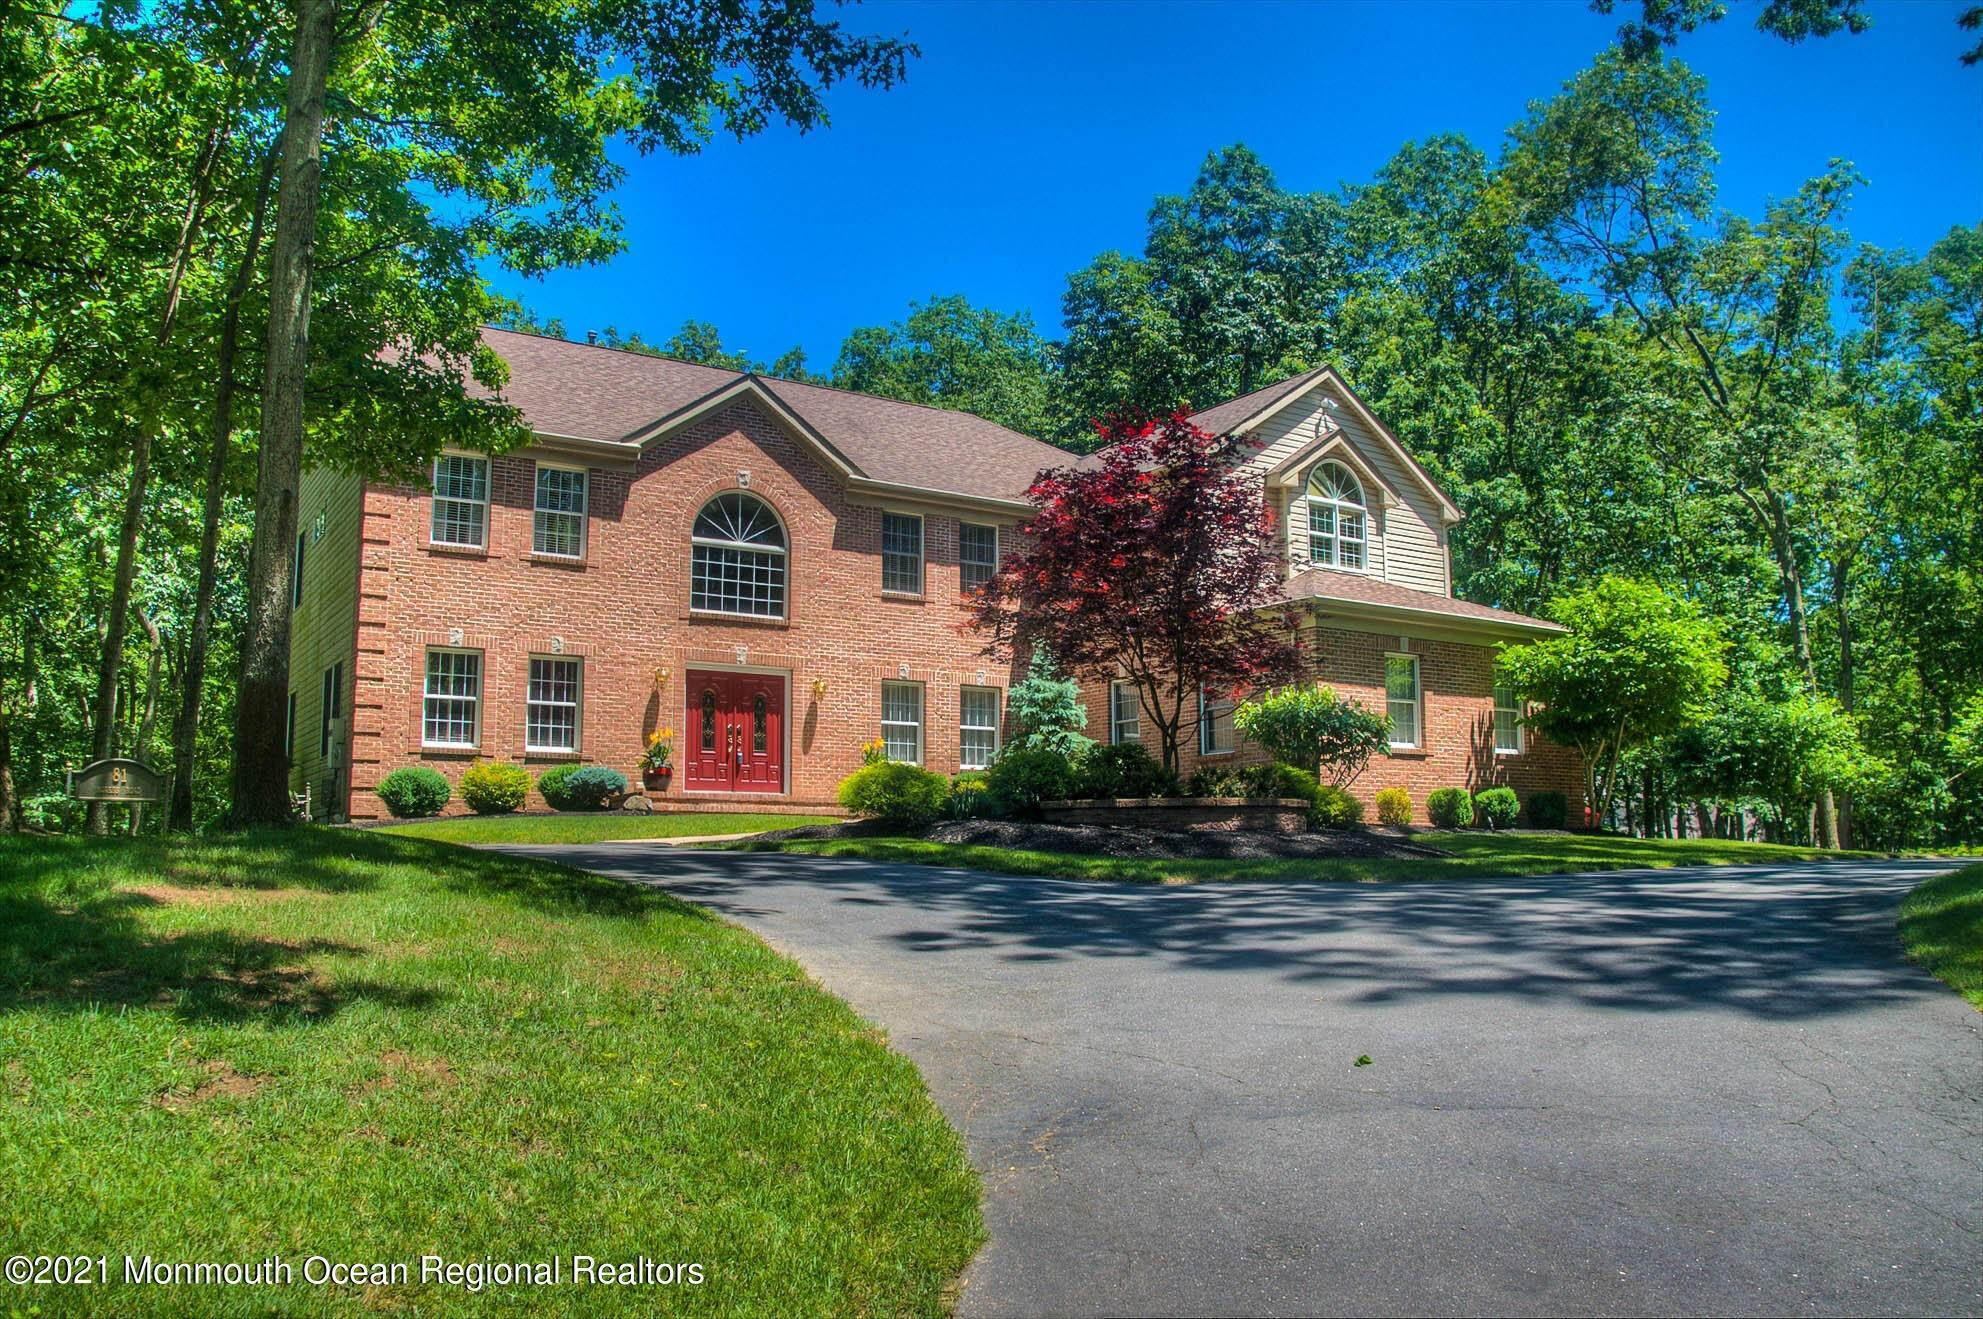 Single Family Home for Sale at 81 Agress Road Perrineville, New Jersey,08535 United States